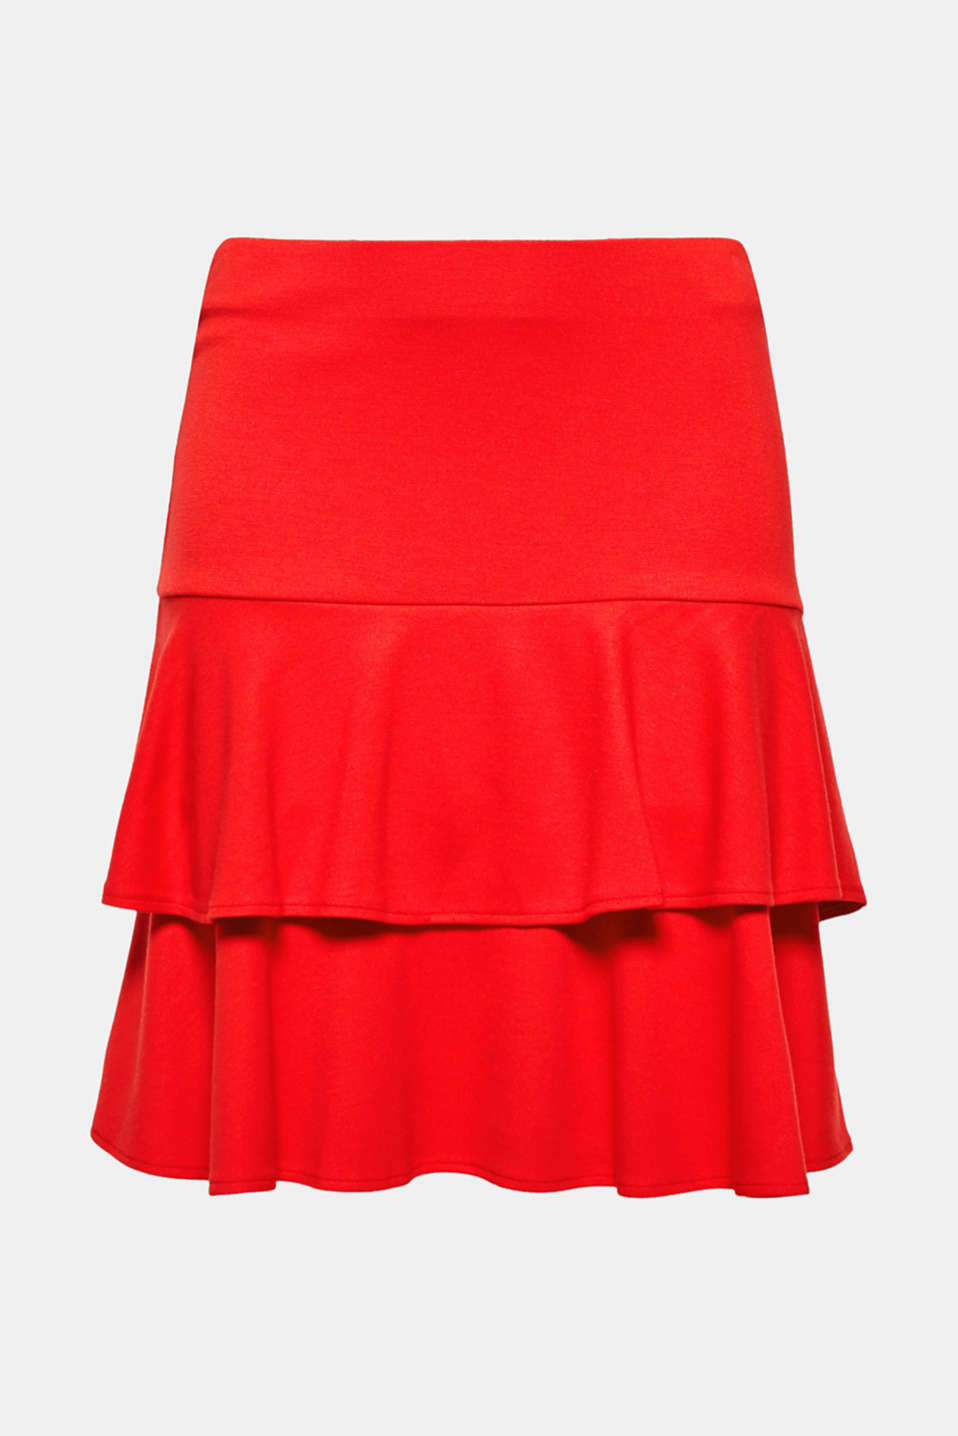 This lightweight, comfortable mini skirt with a beautifully shaped flounce will complete your perfect summer outfit!